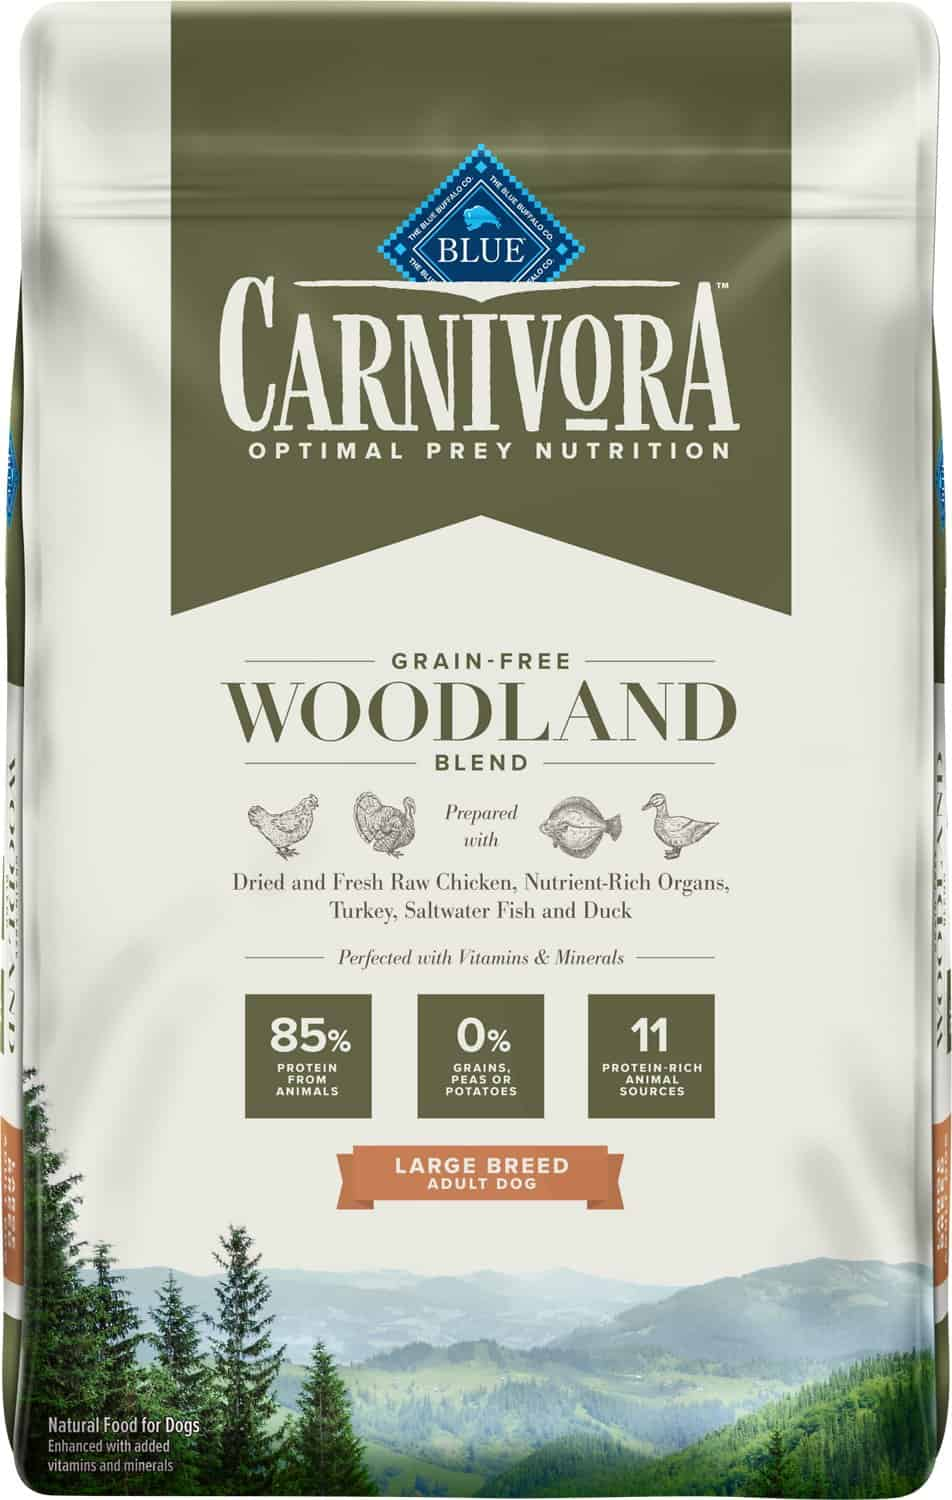 Blue Buffalo Carnivora Review 2021: The Pea & Potato Free Dog Food Line 17